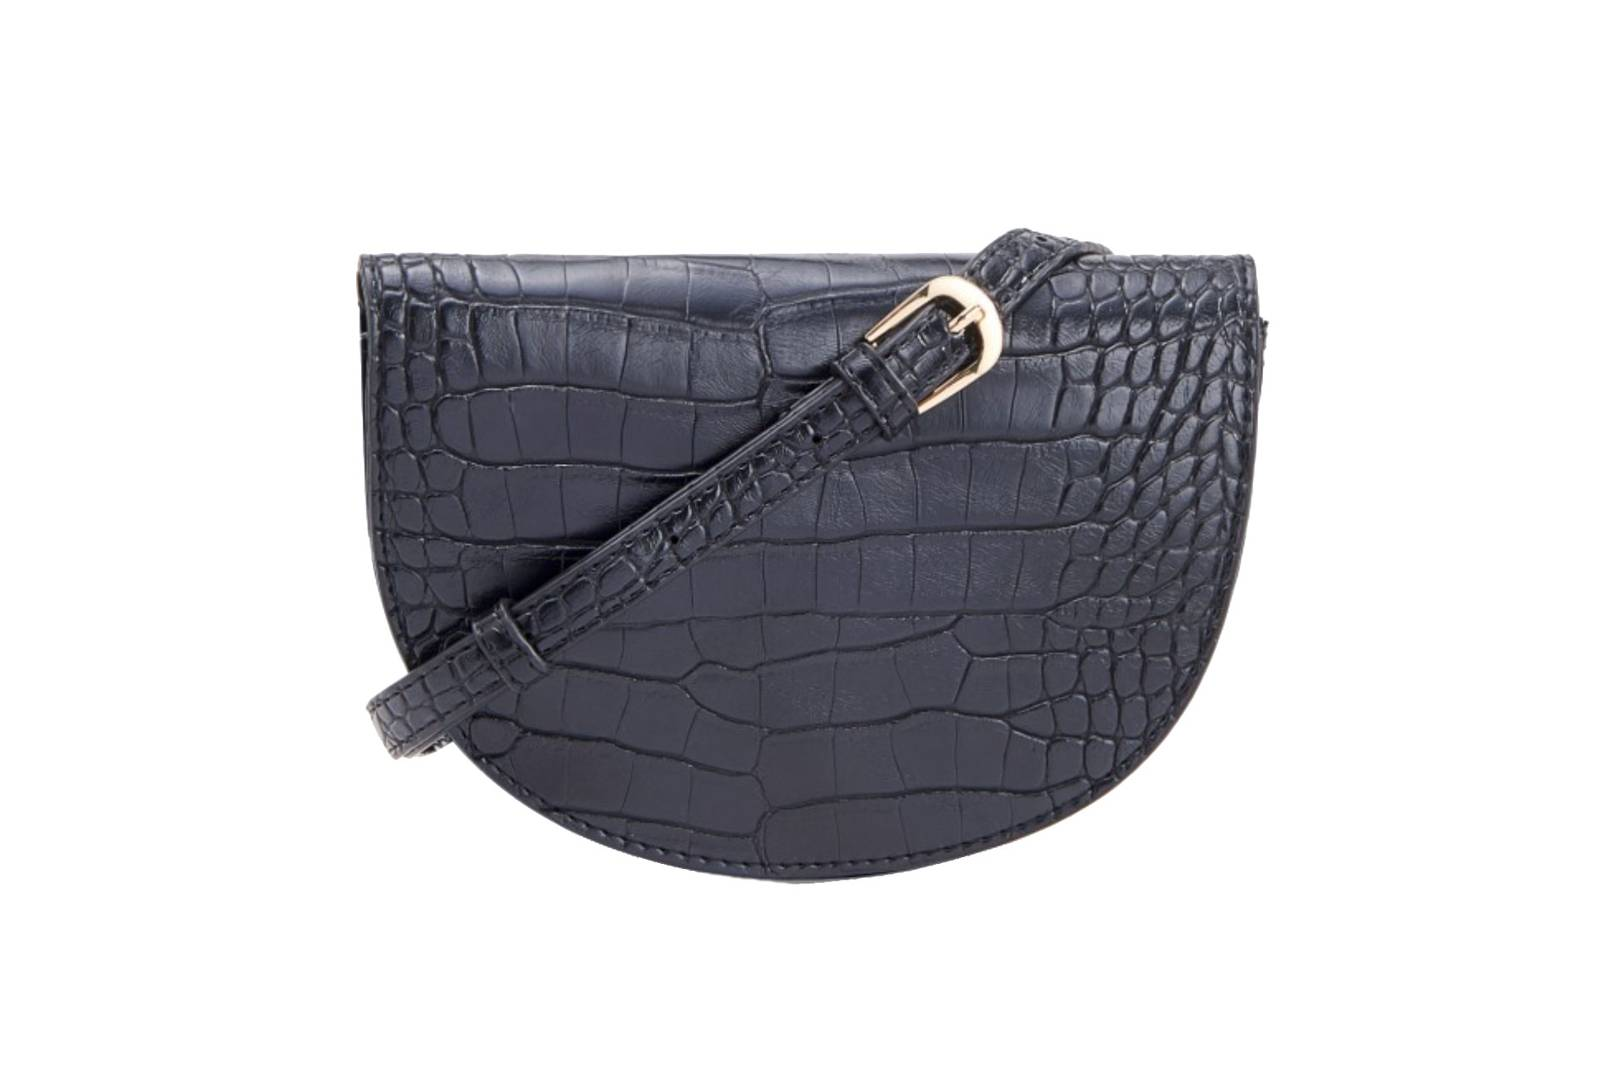 36248205b96a79 The Best New Season Mock Croc Handbags | British Vogue